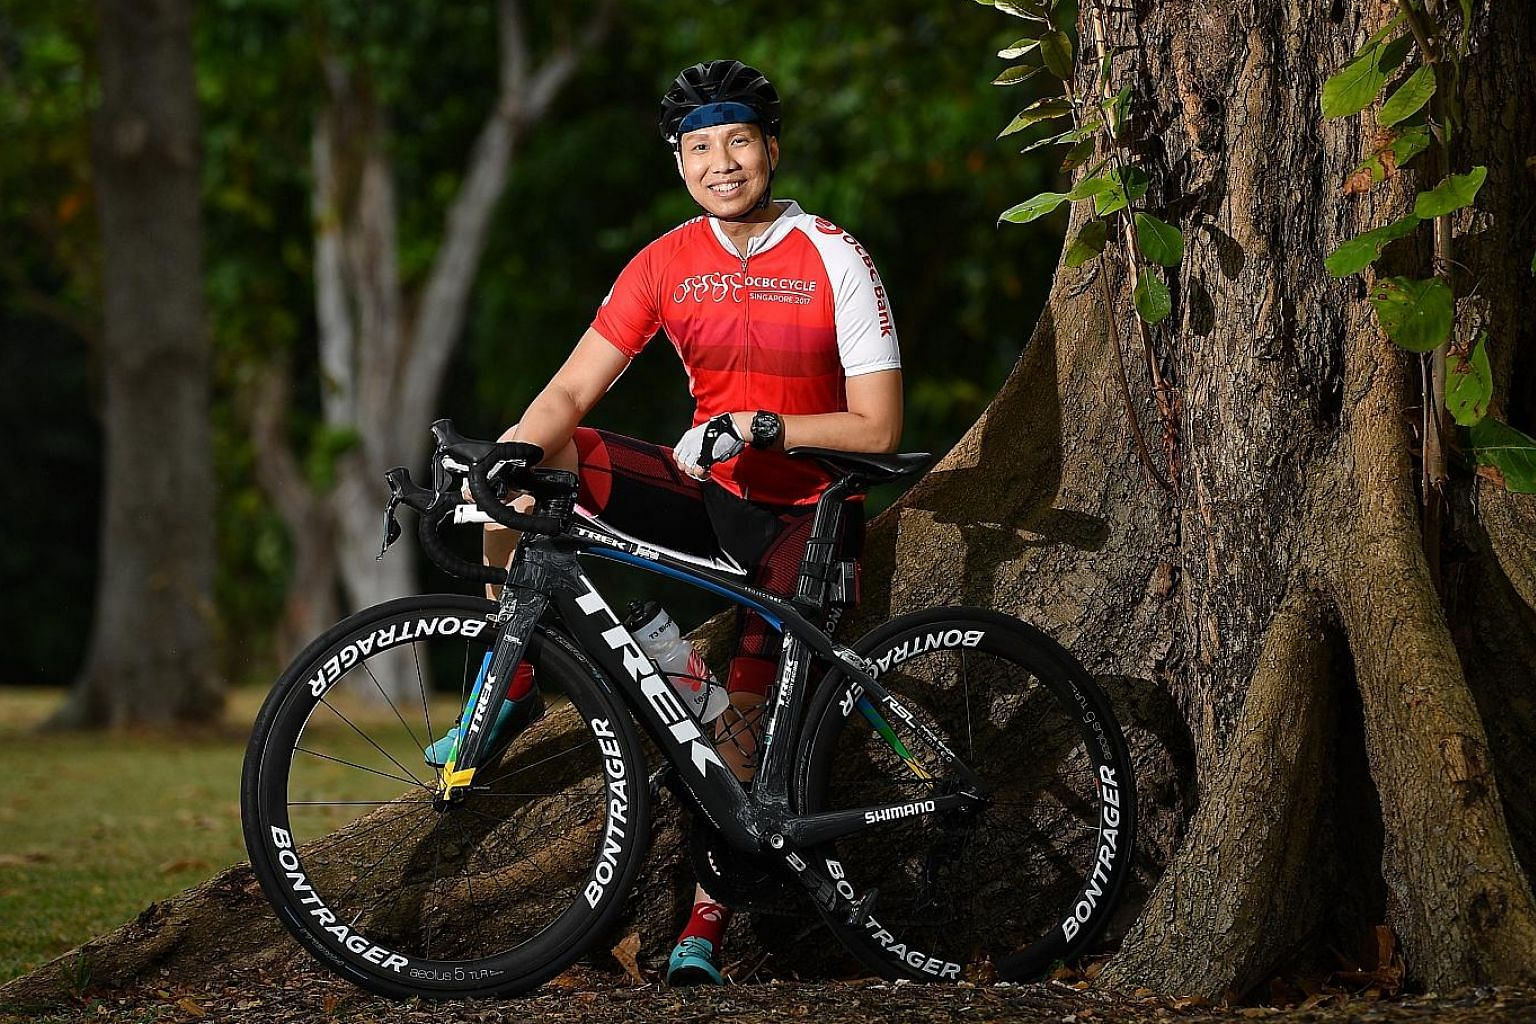 Businessman Shawn Low, 37, is aiming to cycle 42km at this year's OCBC Cycle The Sportive Ride in May despite undergoing chemotherapy for brain cancer. Last year, he even rode 320km from Hanoi to Halong Bay and back with 12 people from his cycling gr